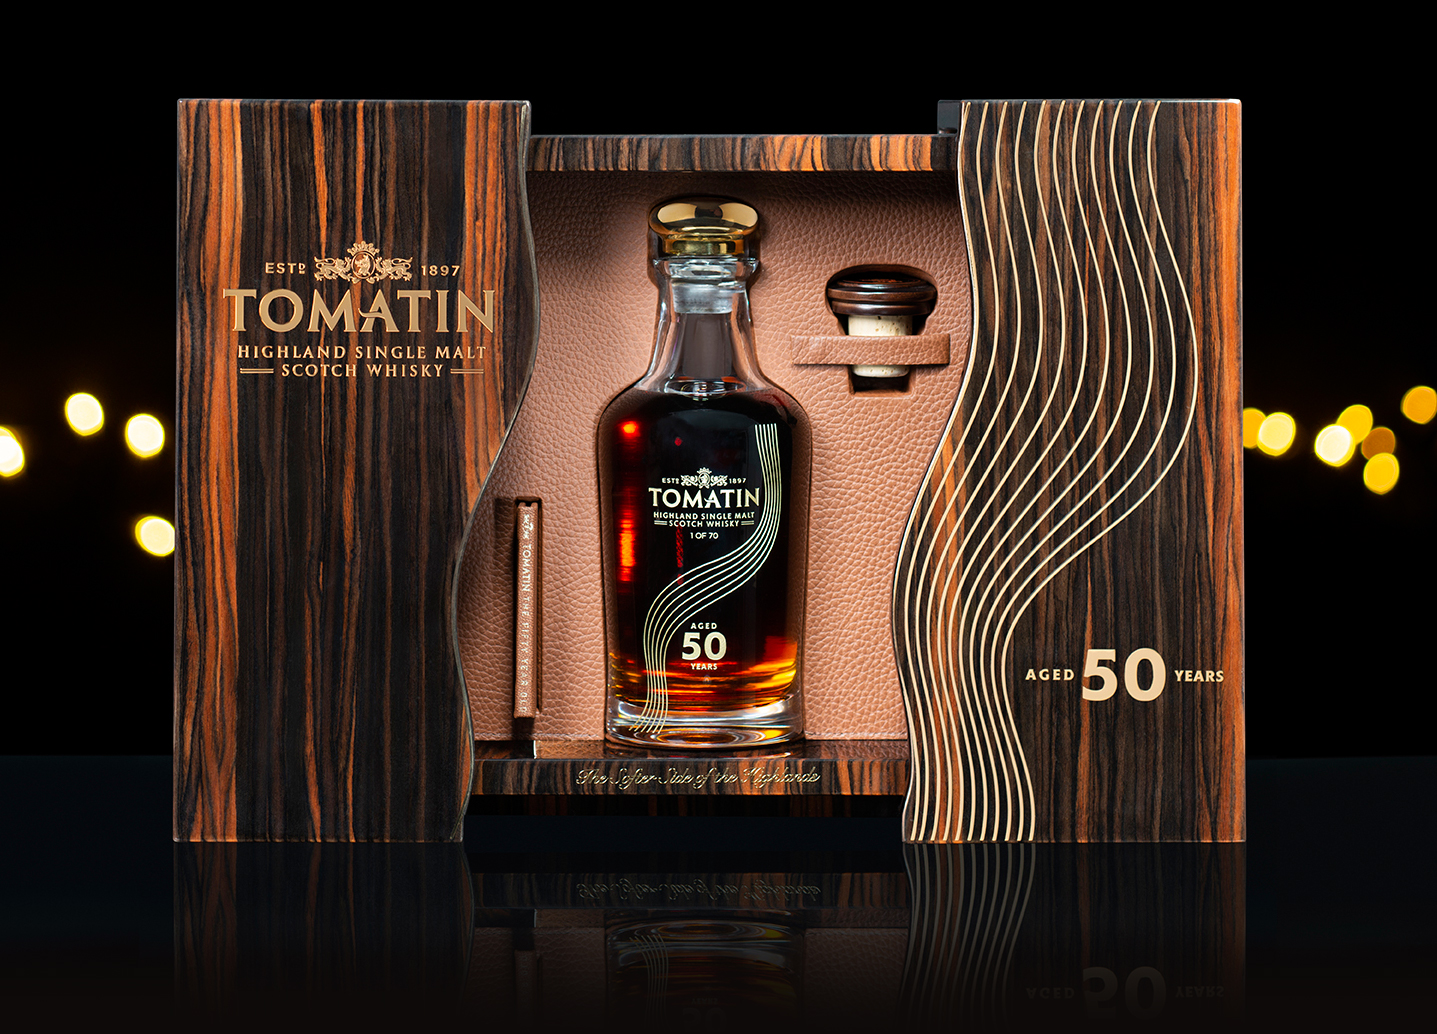 Tomatin Releases First 50 Year Old Whisky and It's £10,000 a Bottle 2